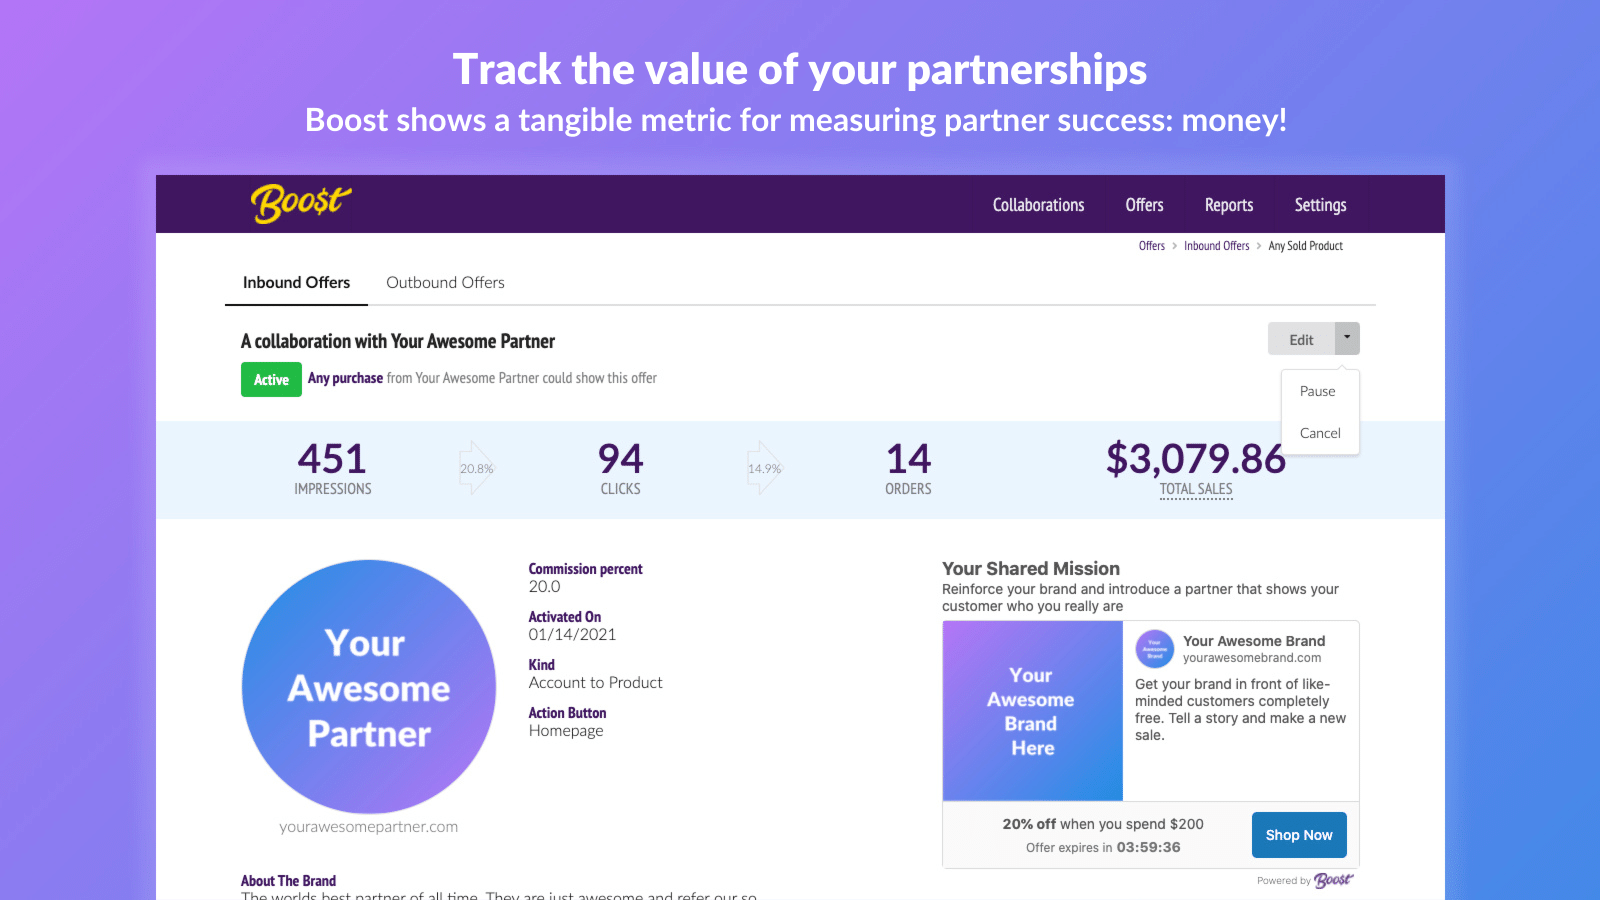 Track the value of your partnerships